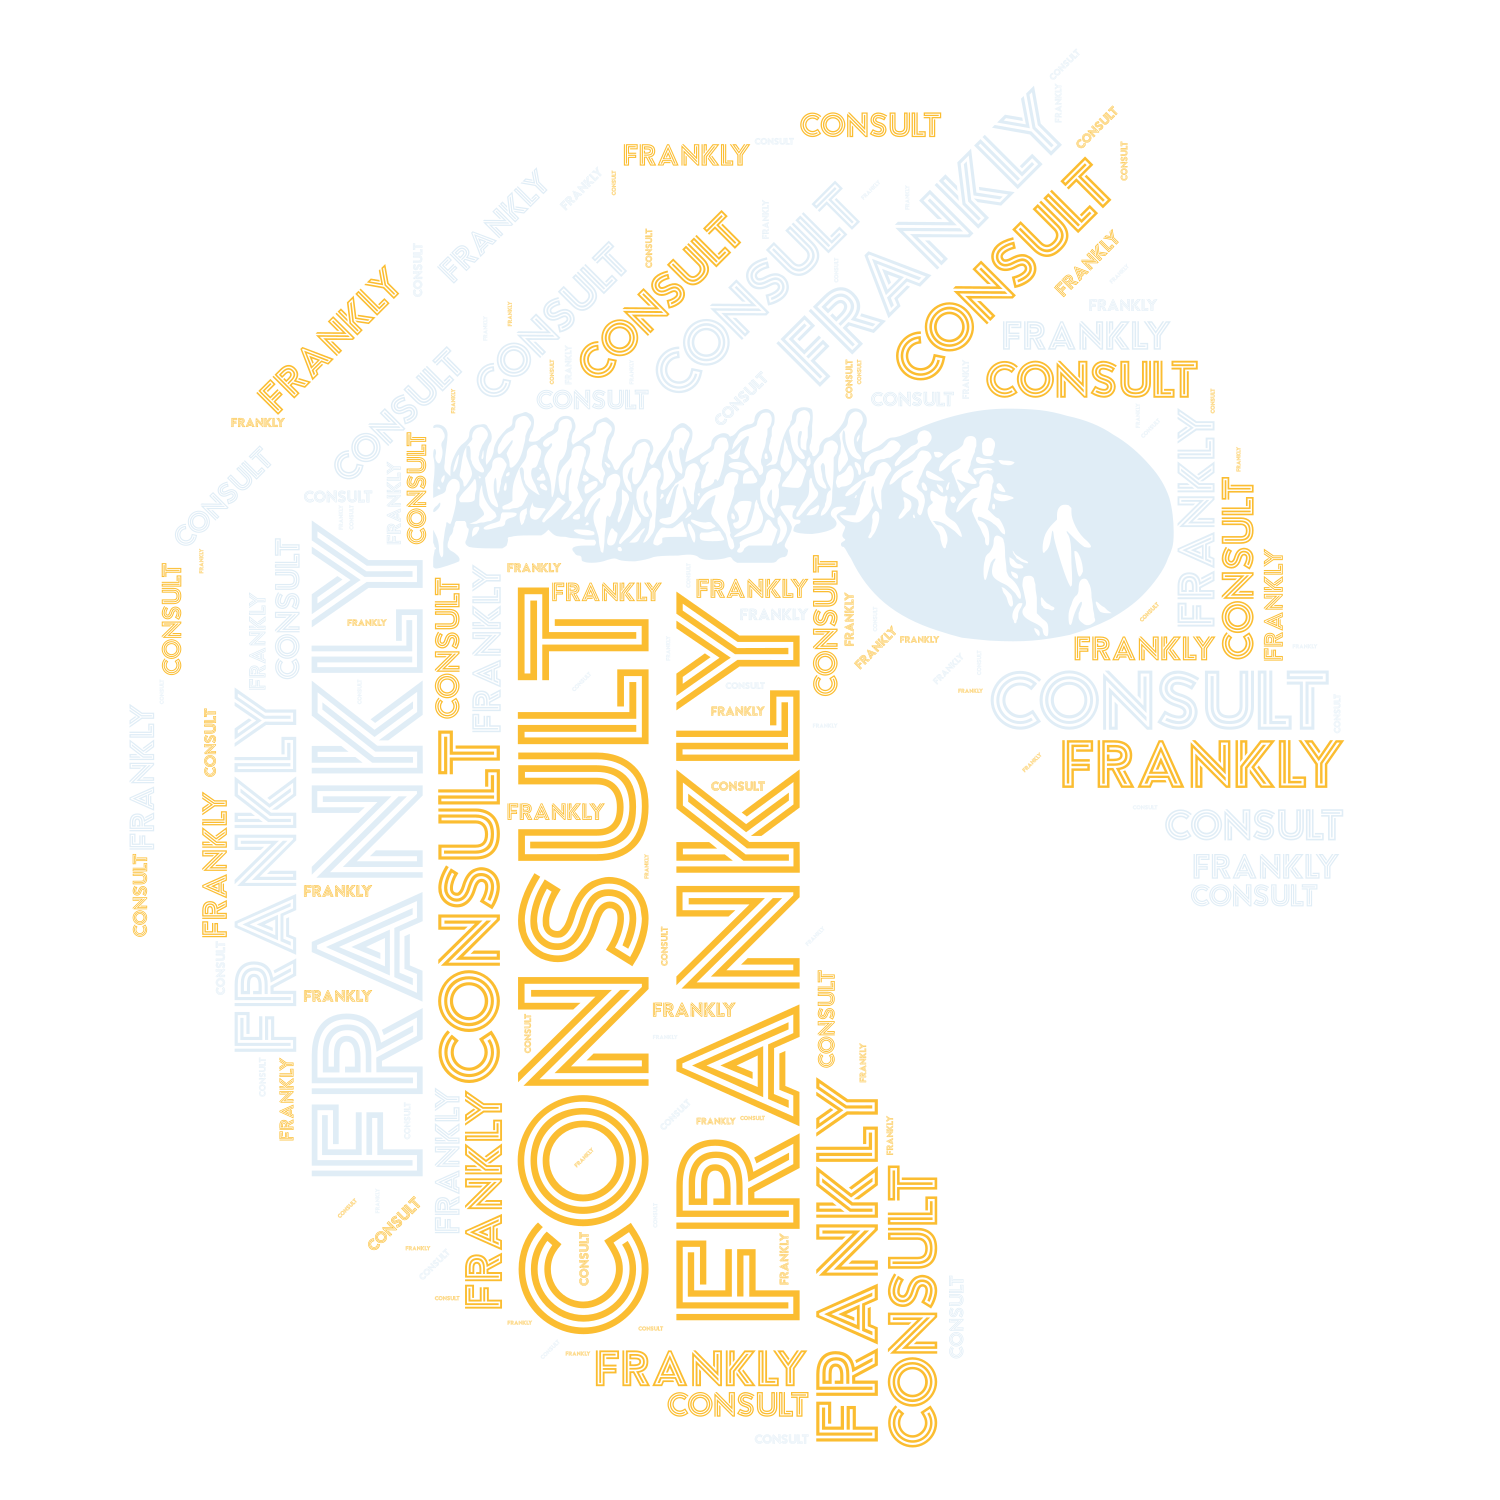 Frankly Consult